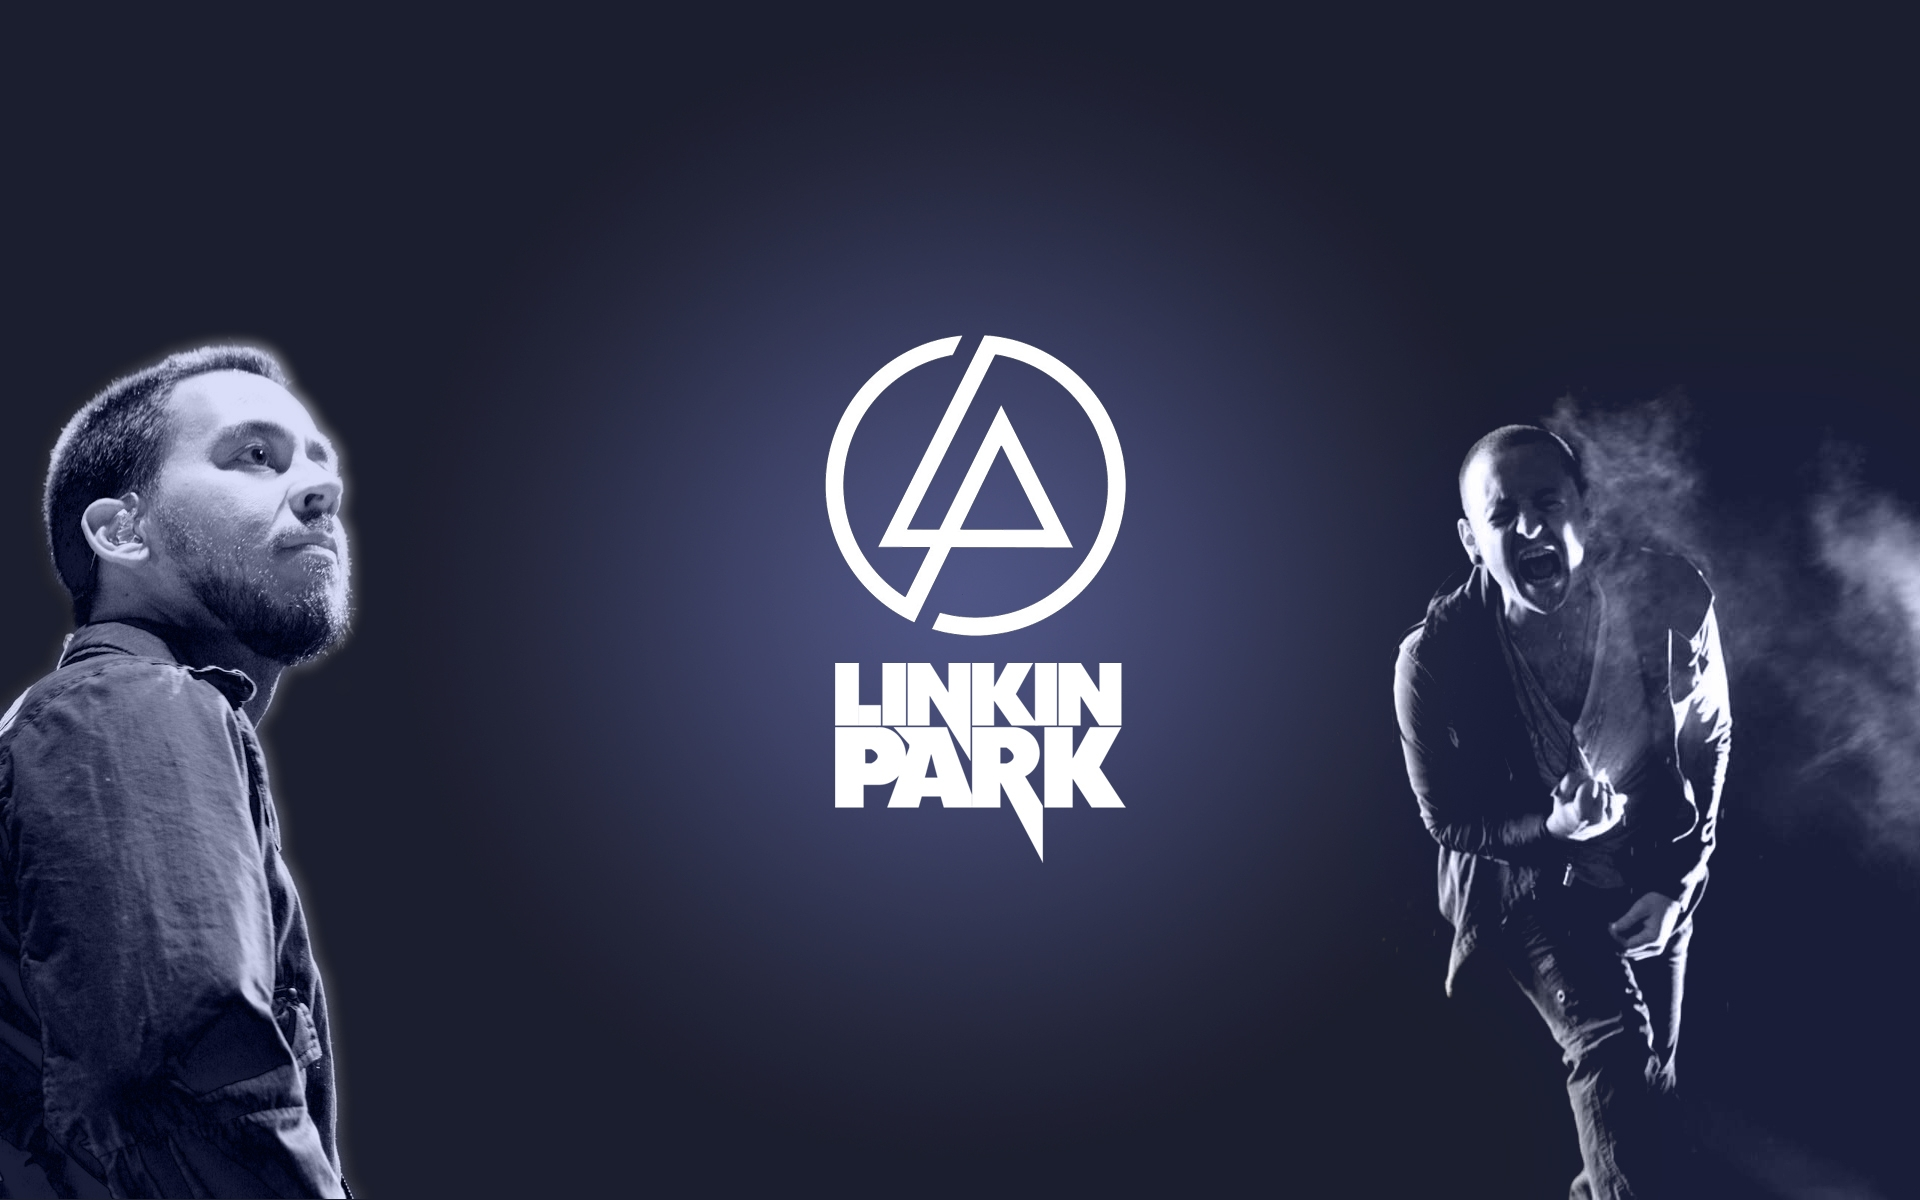 Linkin Park Wallpapers for Iphone Iphone plus Iphone plus